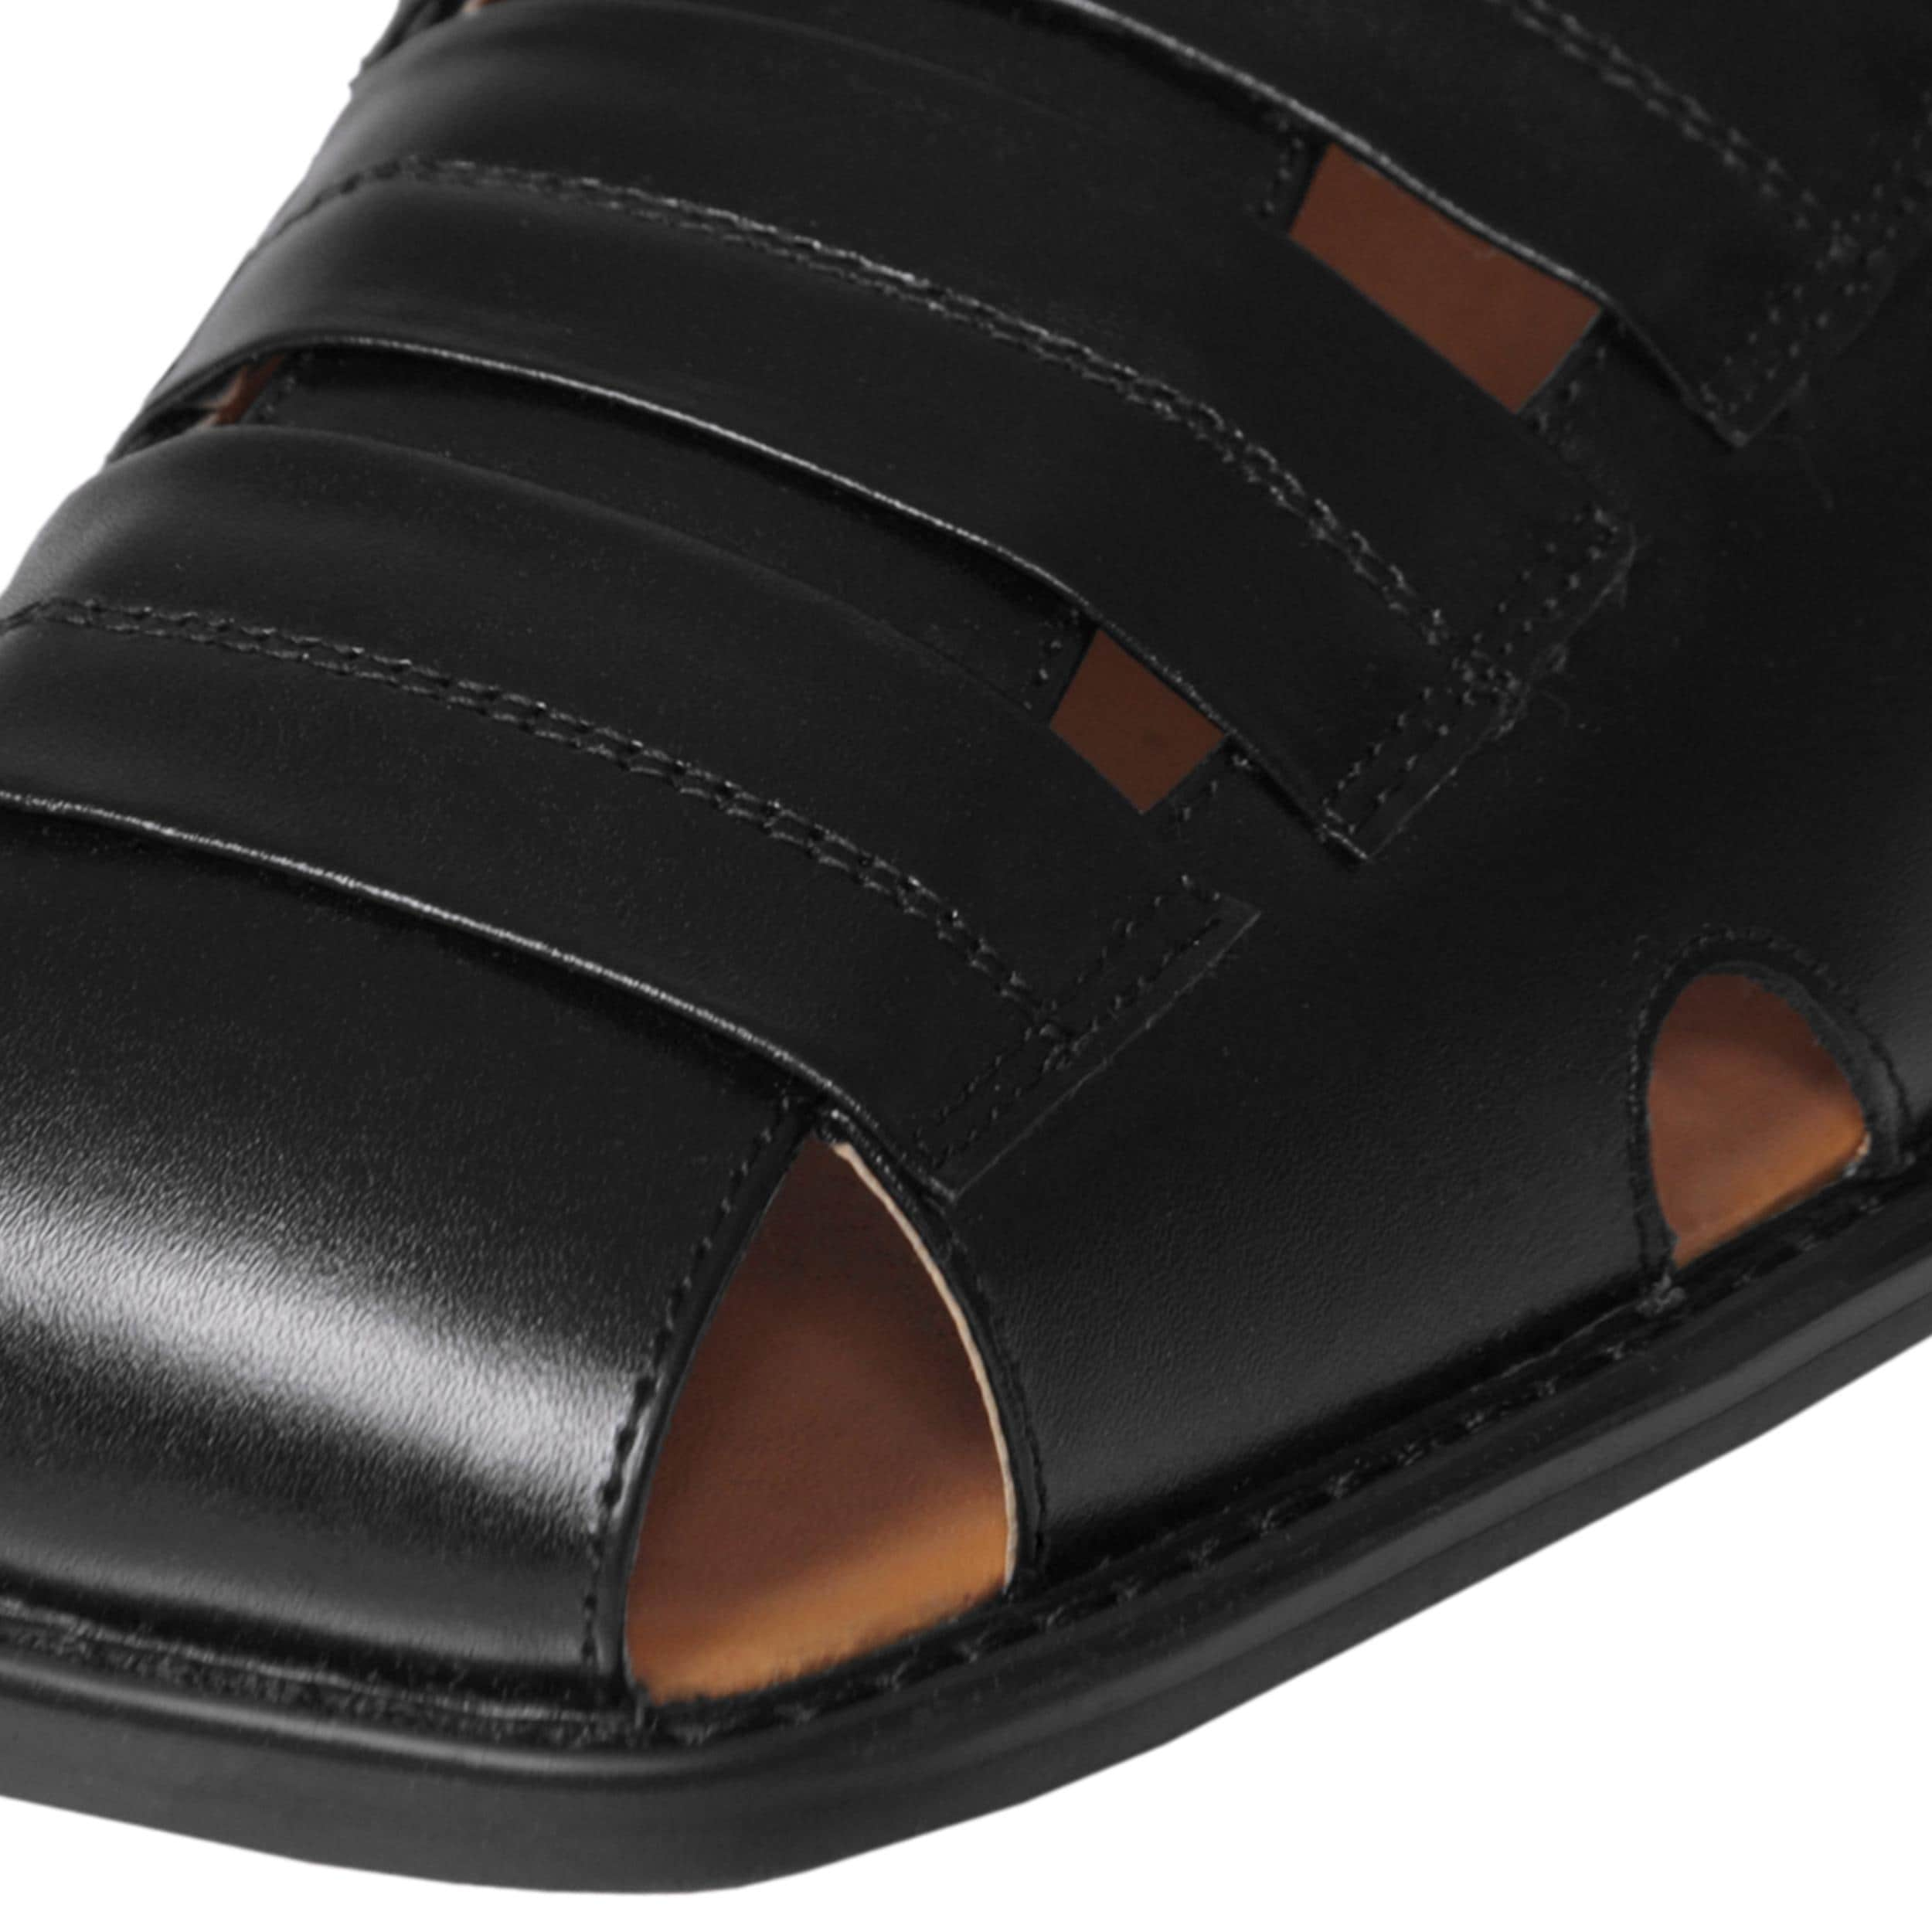 Boston Traveler Men's Genuine Leather Square Toe Sandals - Thumbnail 2